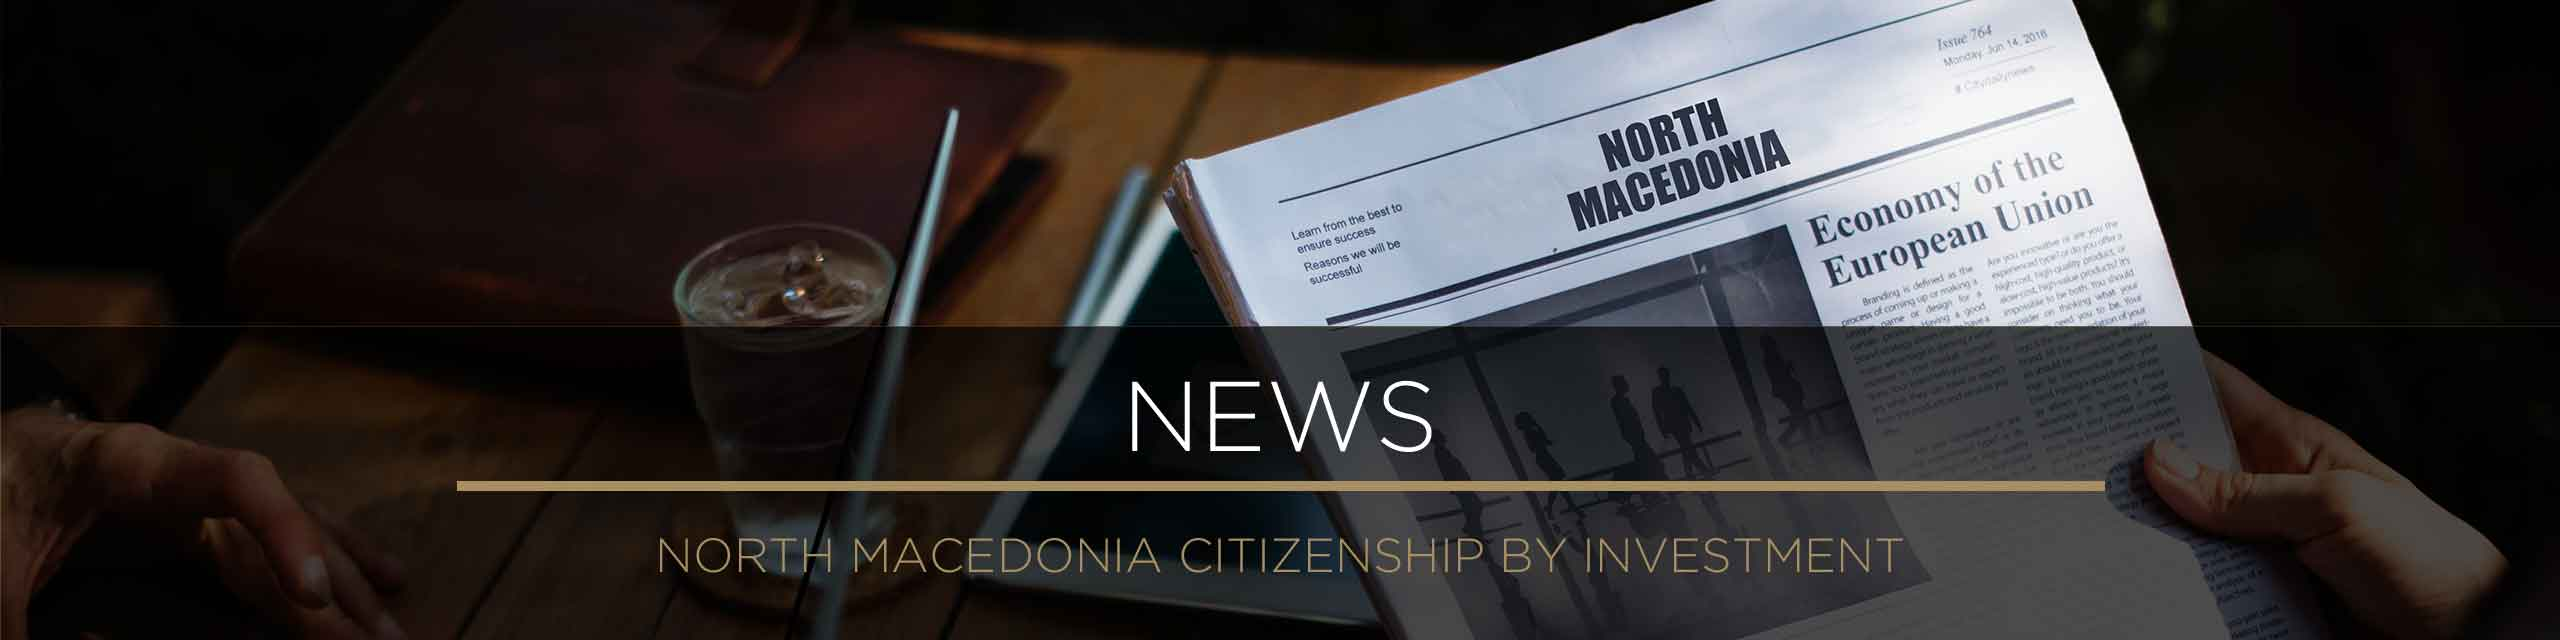 News and press articles on the North Macedonian citizenship program